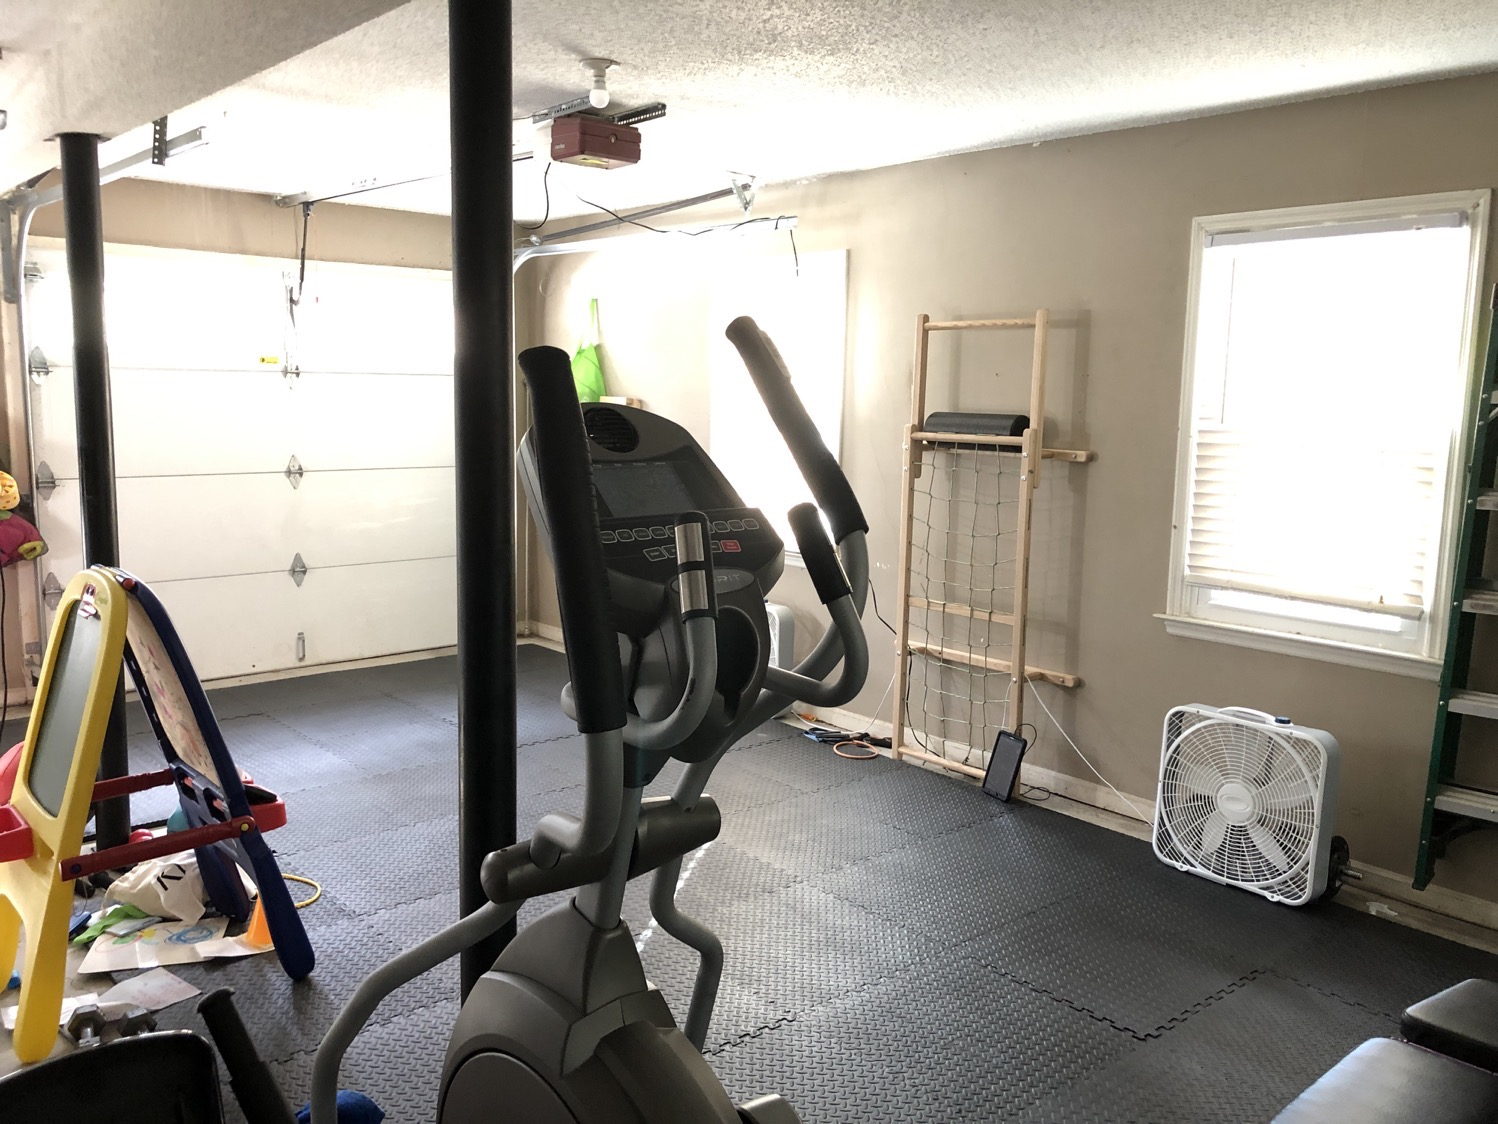 Of the best things you need to set up a killer home gym